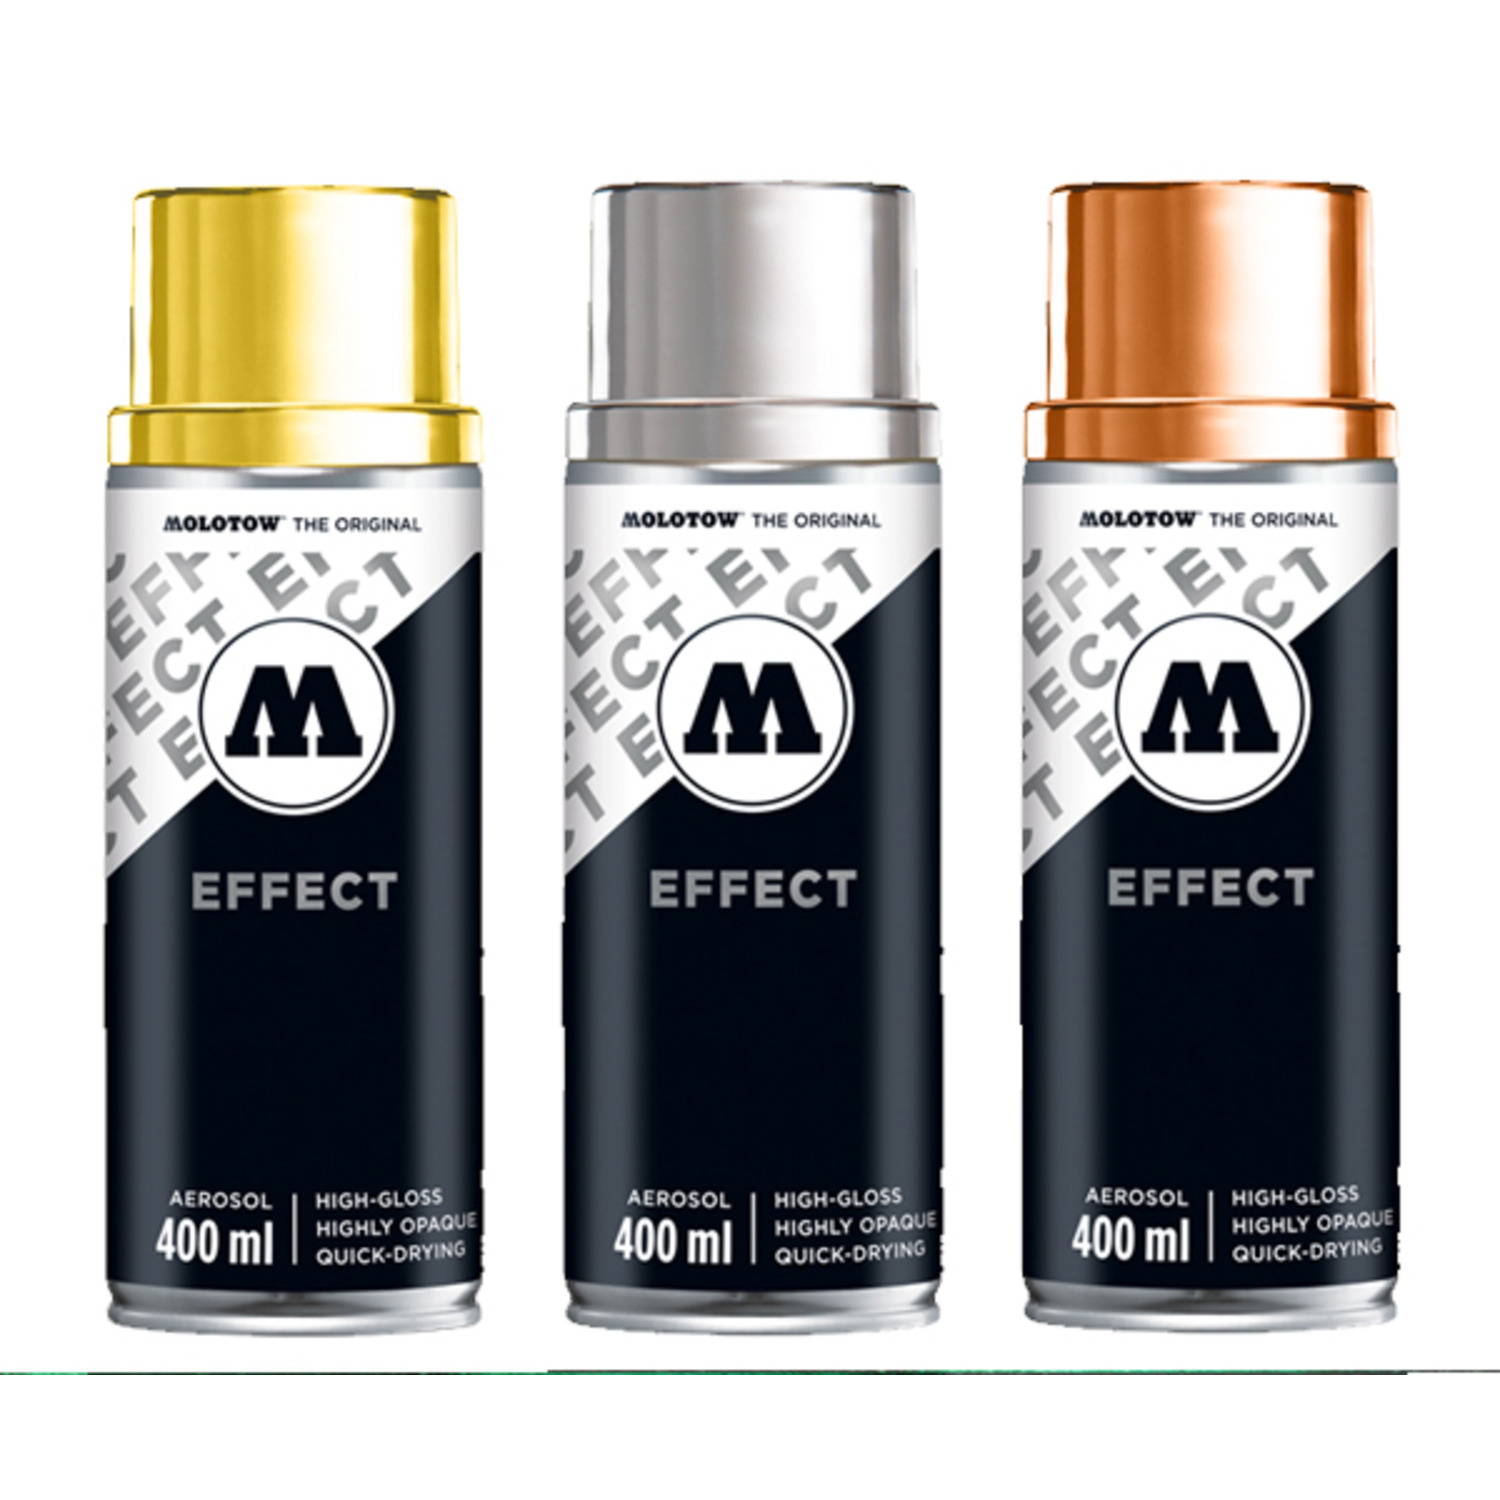 molotow_effect_400ml_big_image